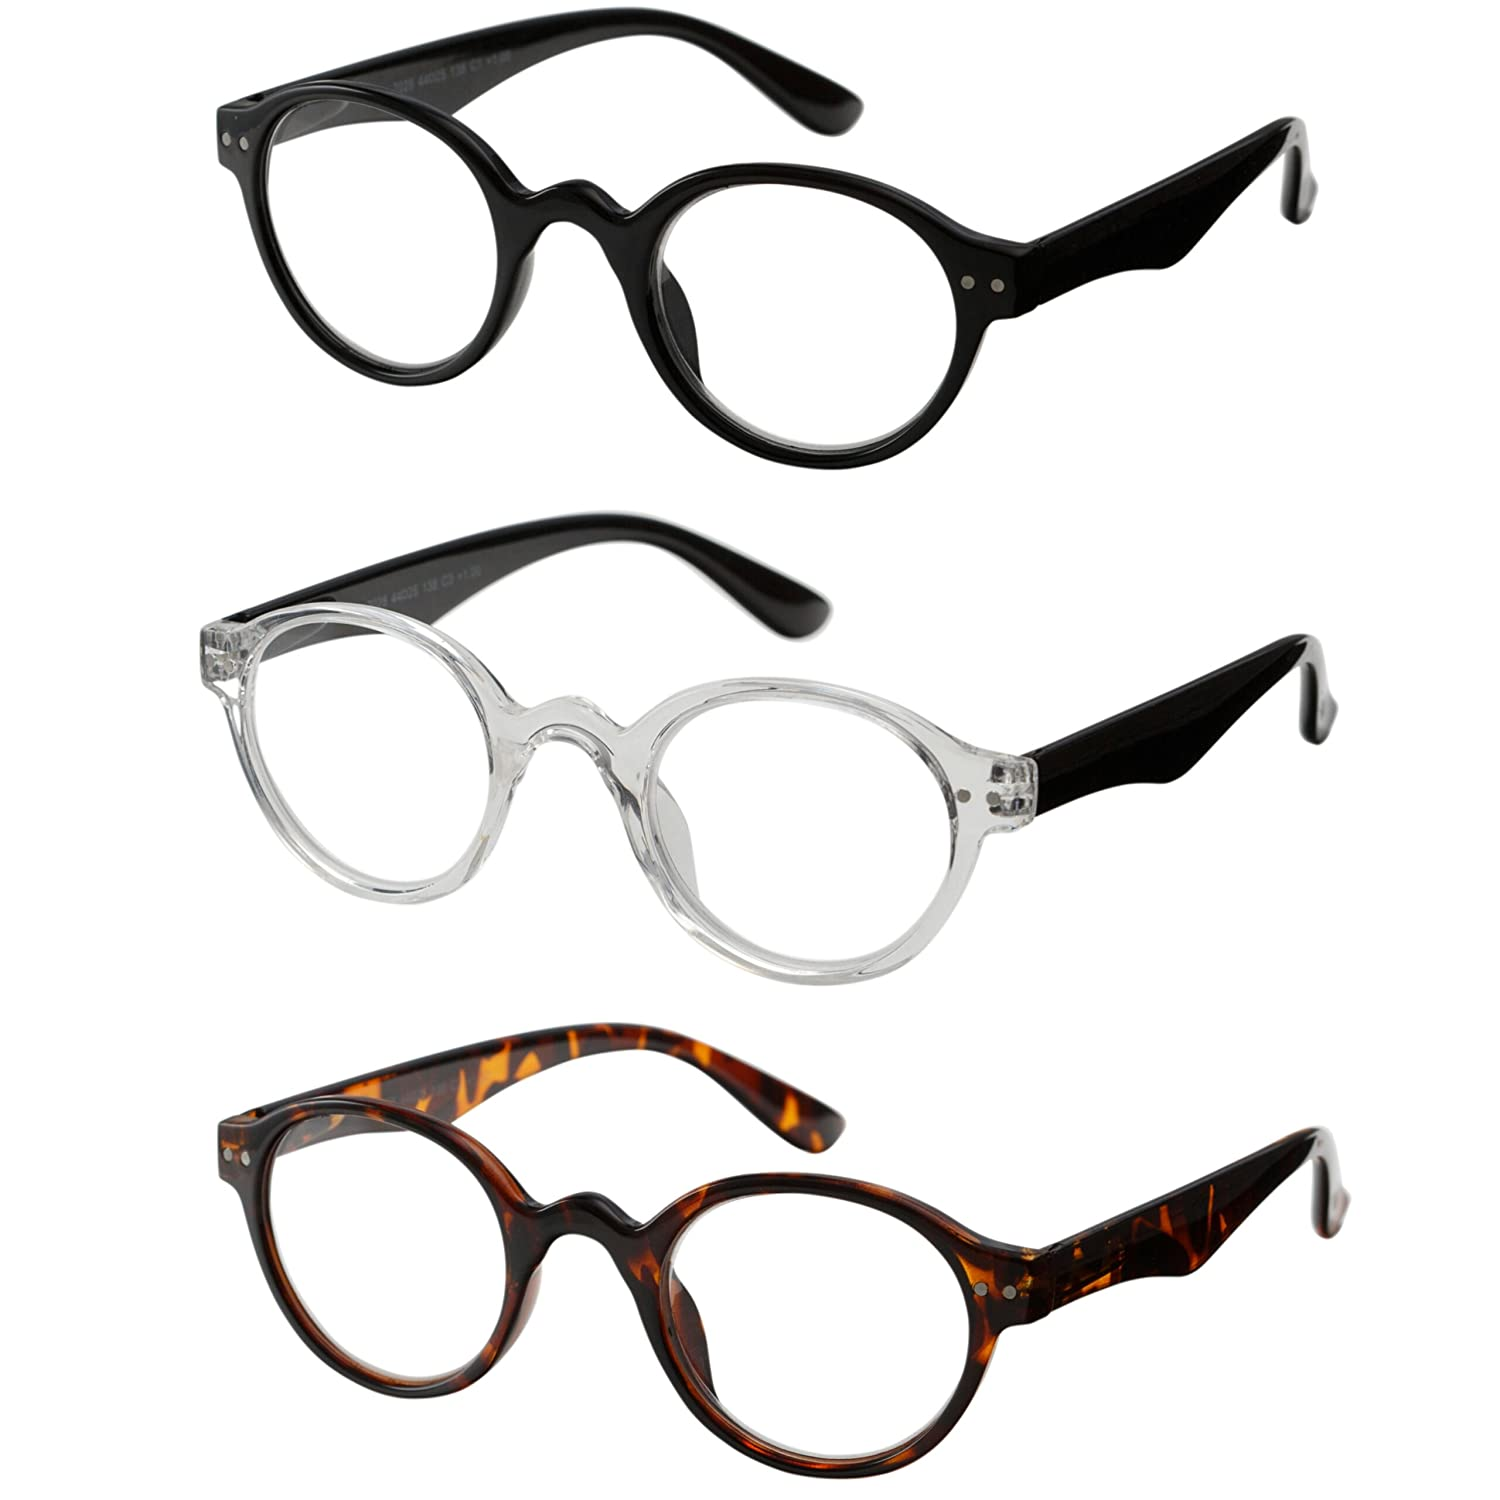 4be88ce6ecf4 Amazon.com  Reading Glasses 3 Pair Spring Hinge Professer Readers for Men  and Women Fashion Glasses for Reading +1  Clothing